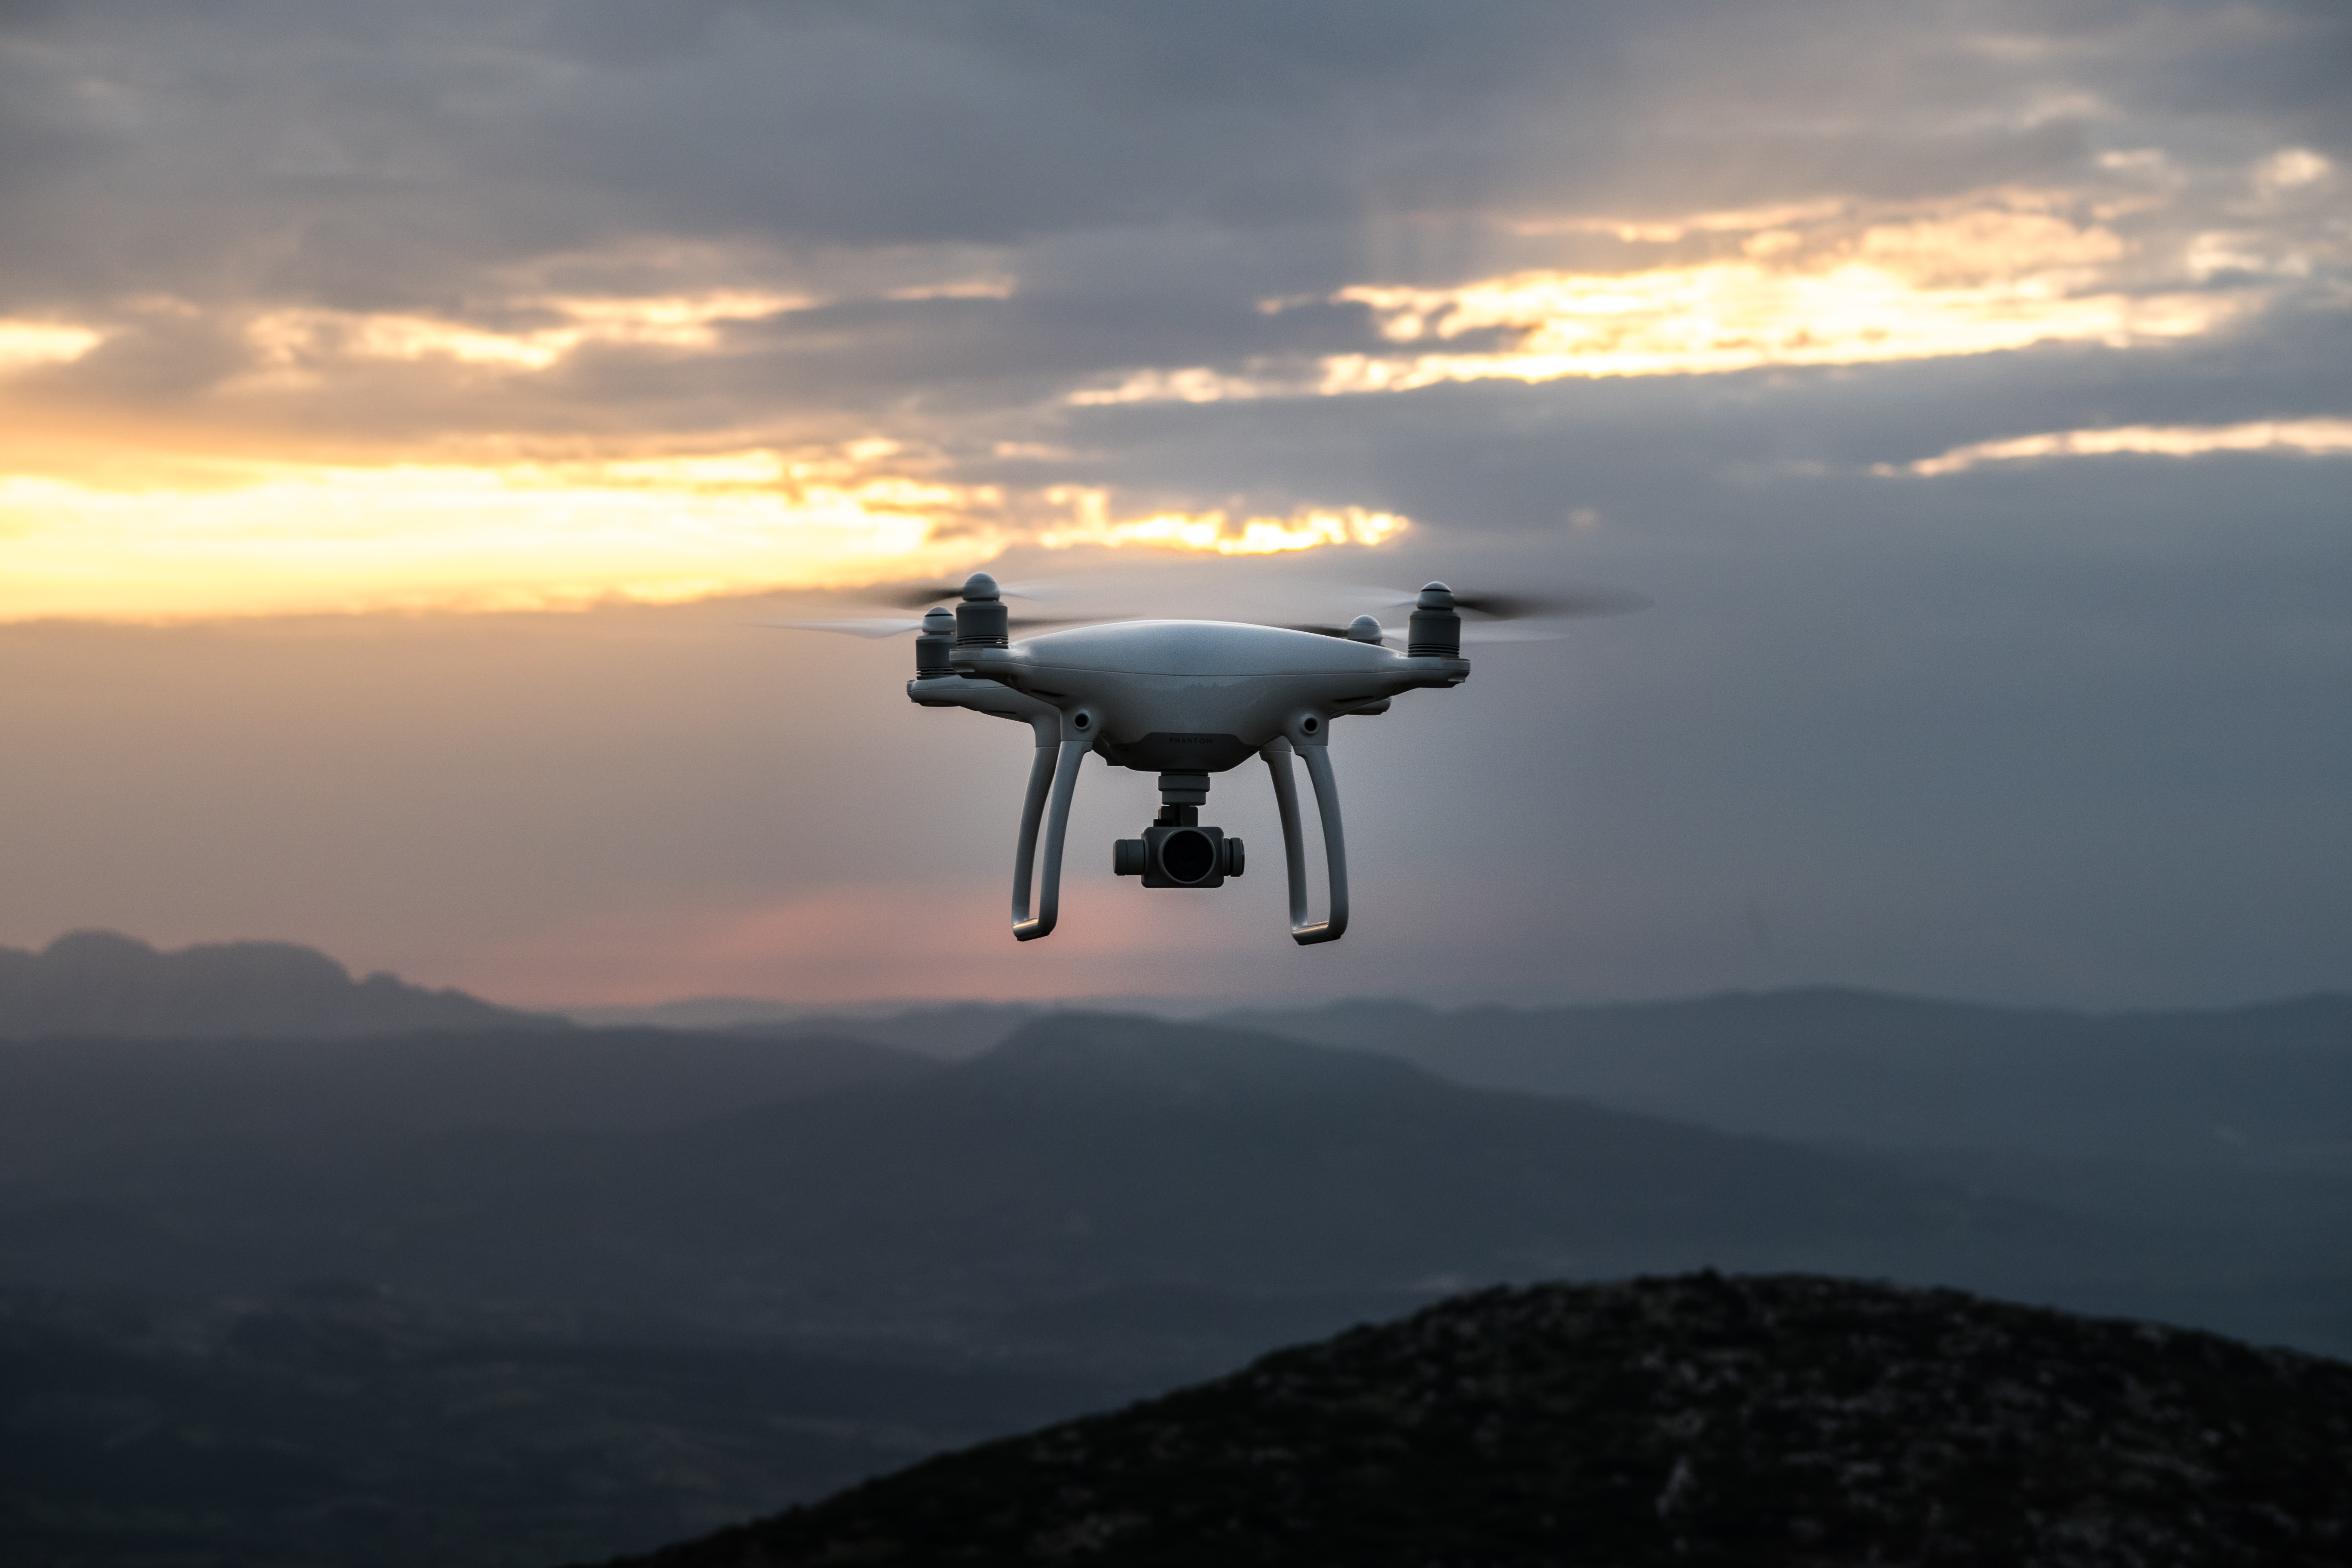 An aerial shot of a drone in flight over hilly terrain in Greece during a cloud covered sunrise-or-sunset